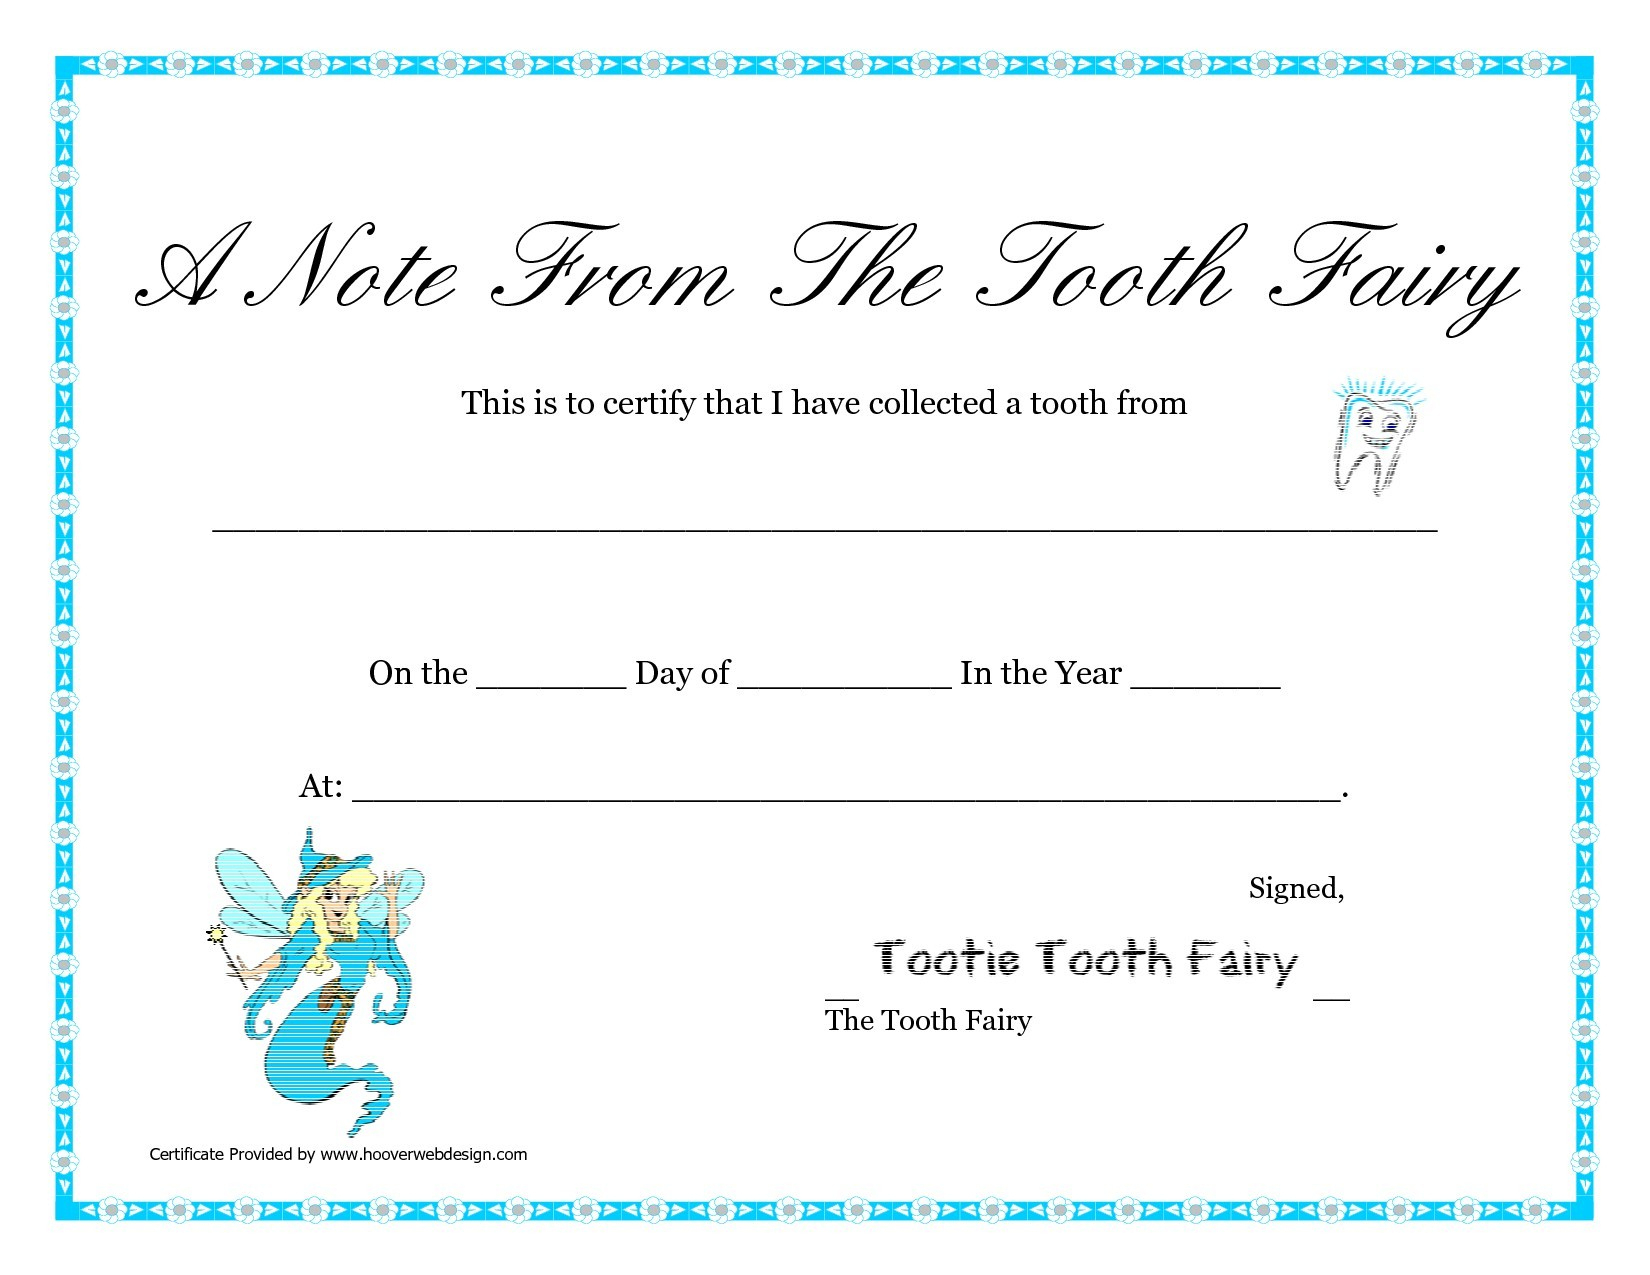 Free Printable Tooth Fairy Certificate Template Lovely Tooth - Free Printable Tooth Fairy Certificate